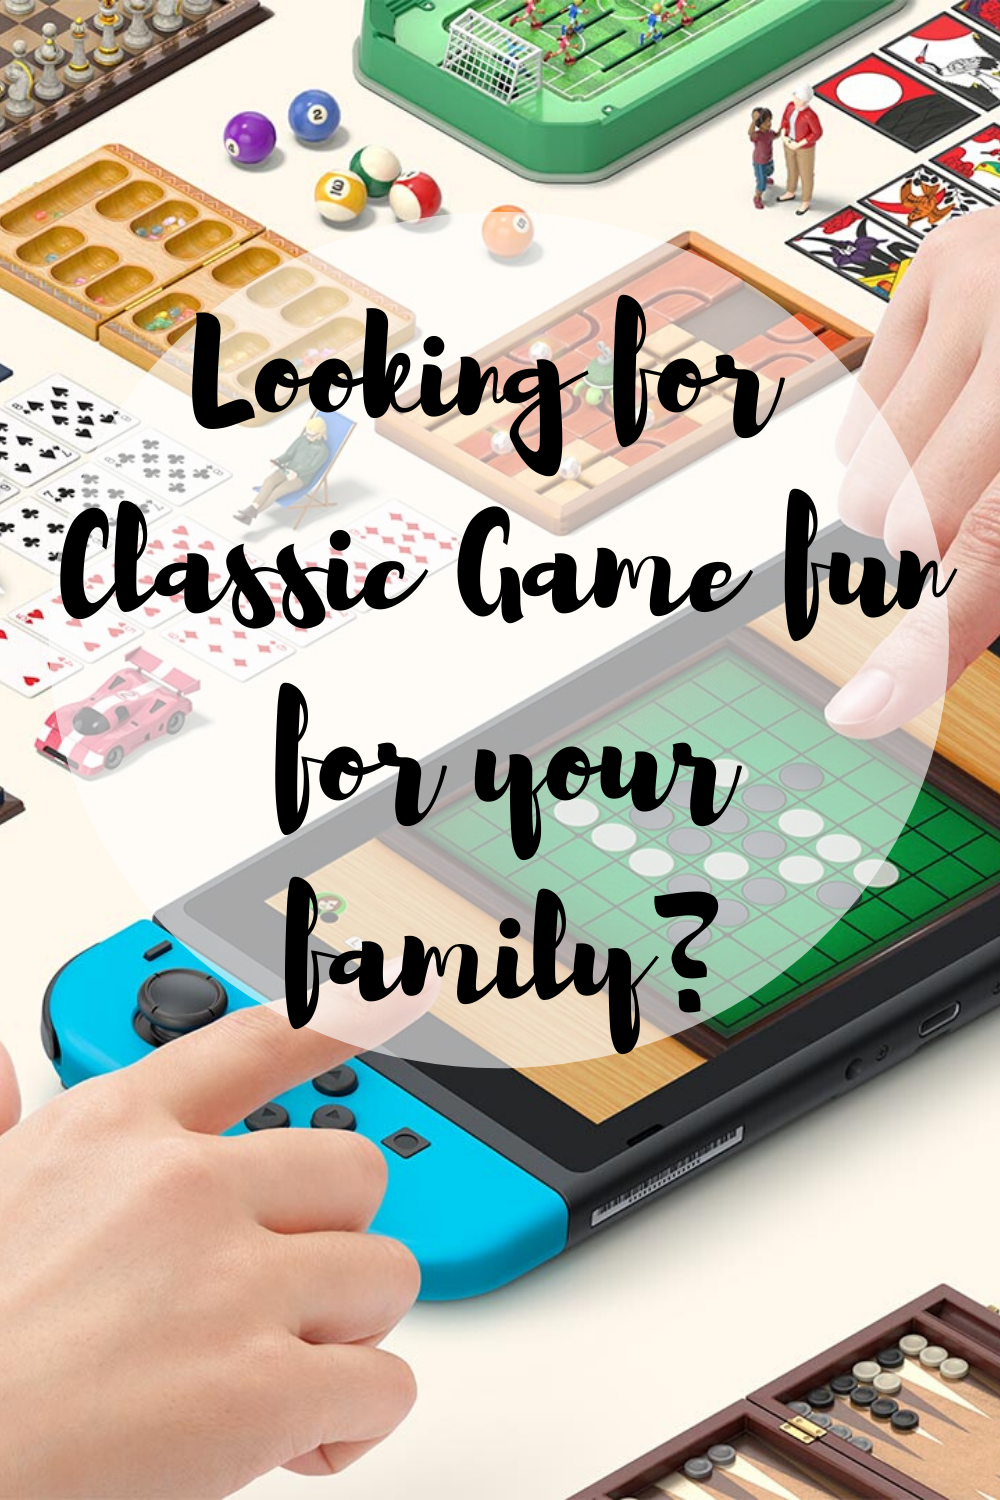 Looking for Classic Game fun for your family?